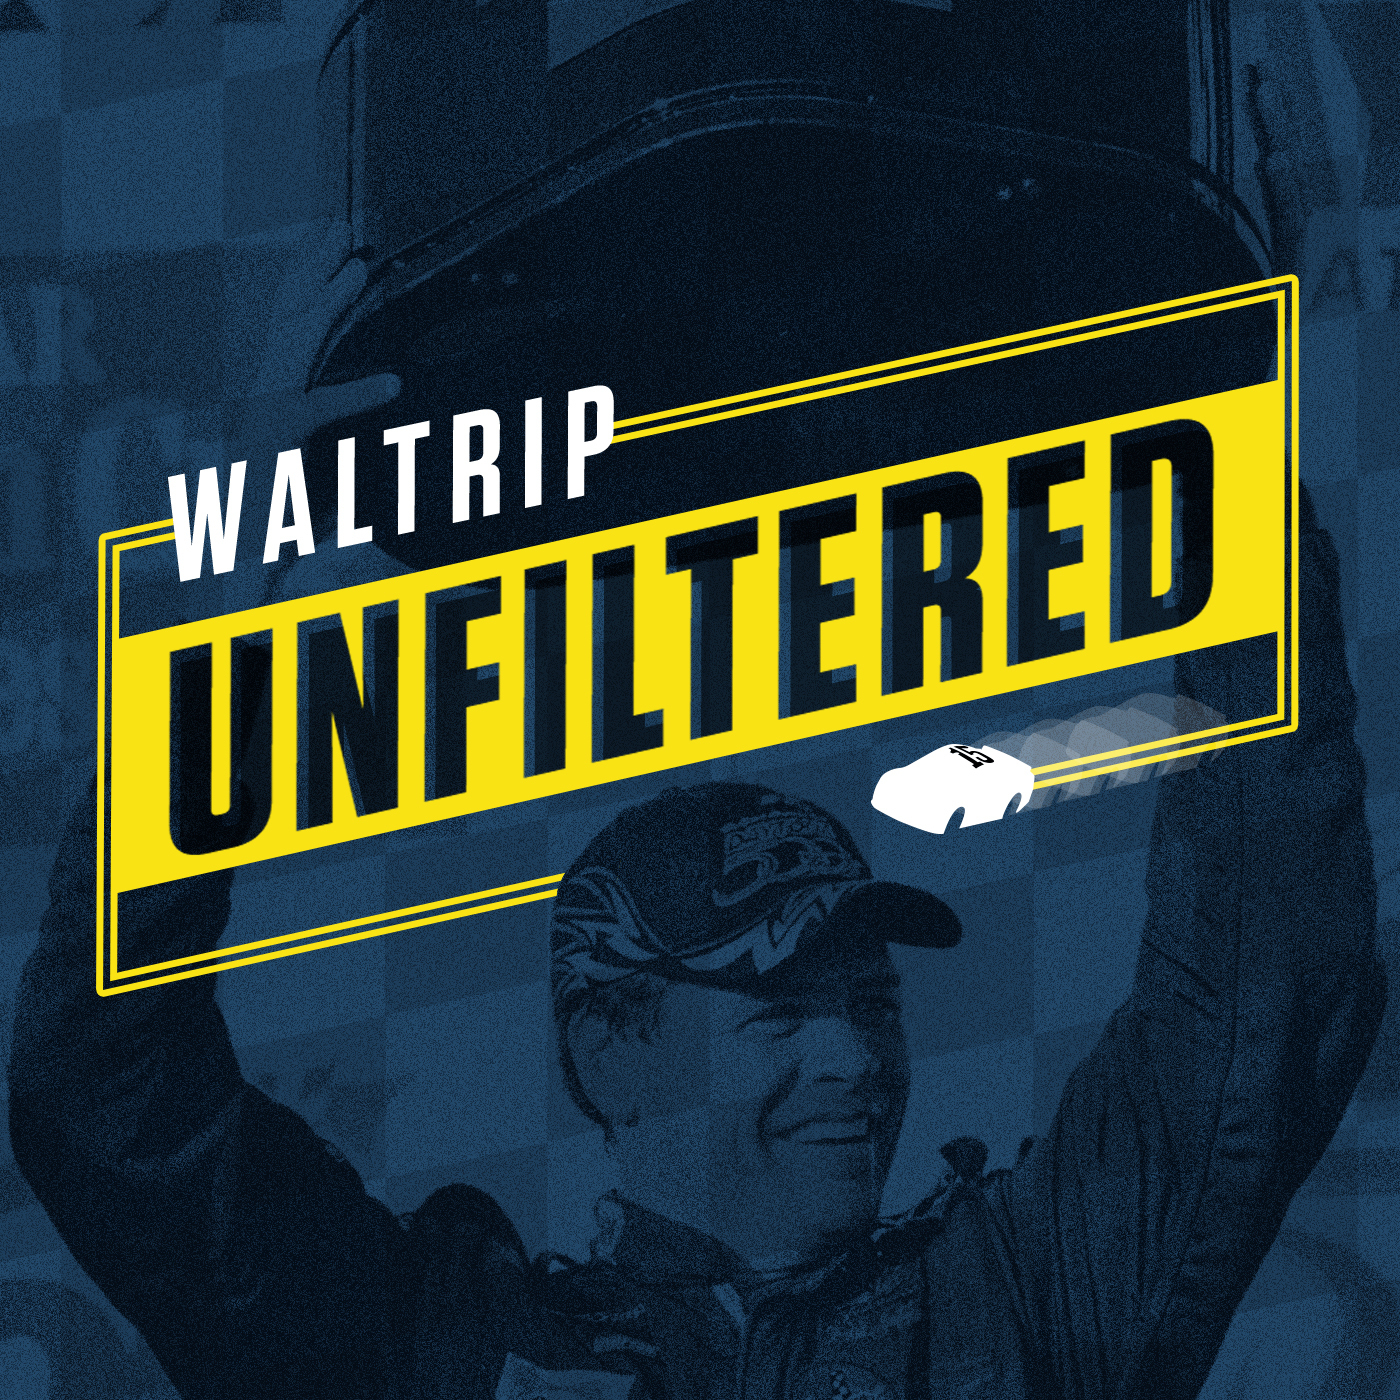 Waltrip Unfiltered